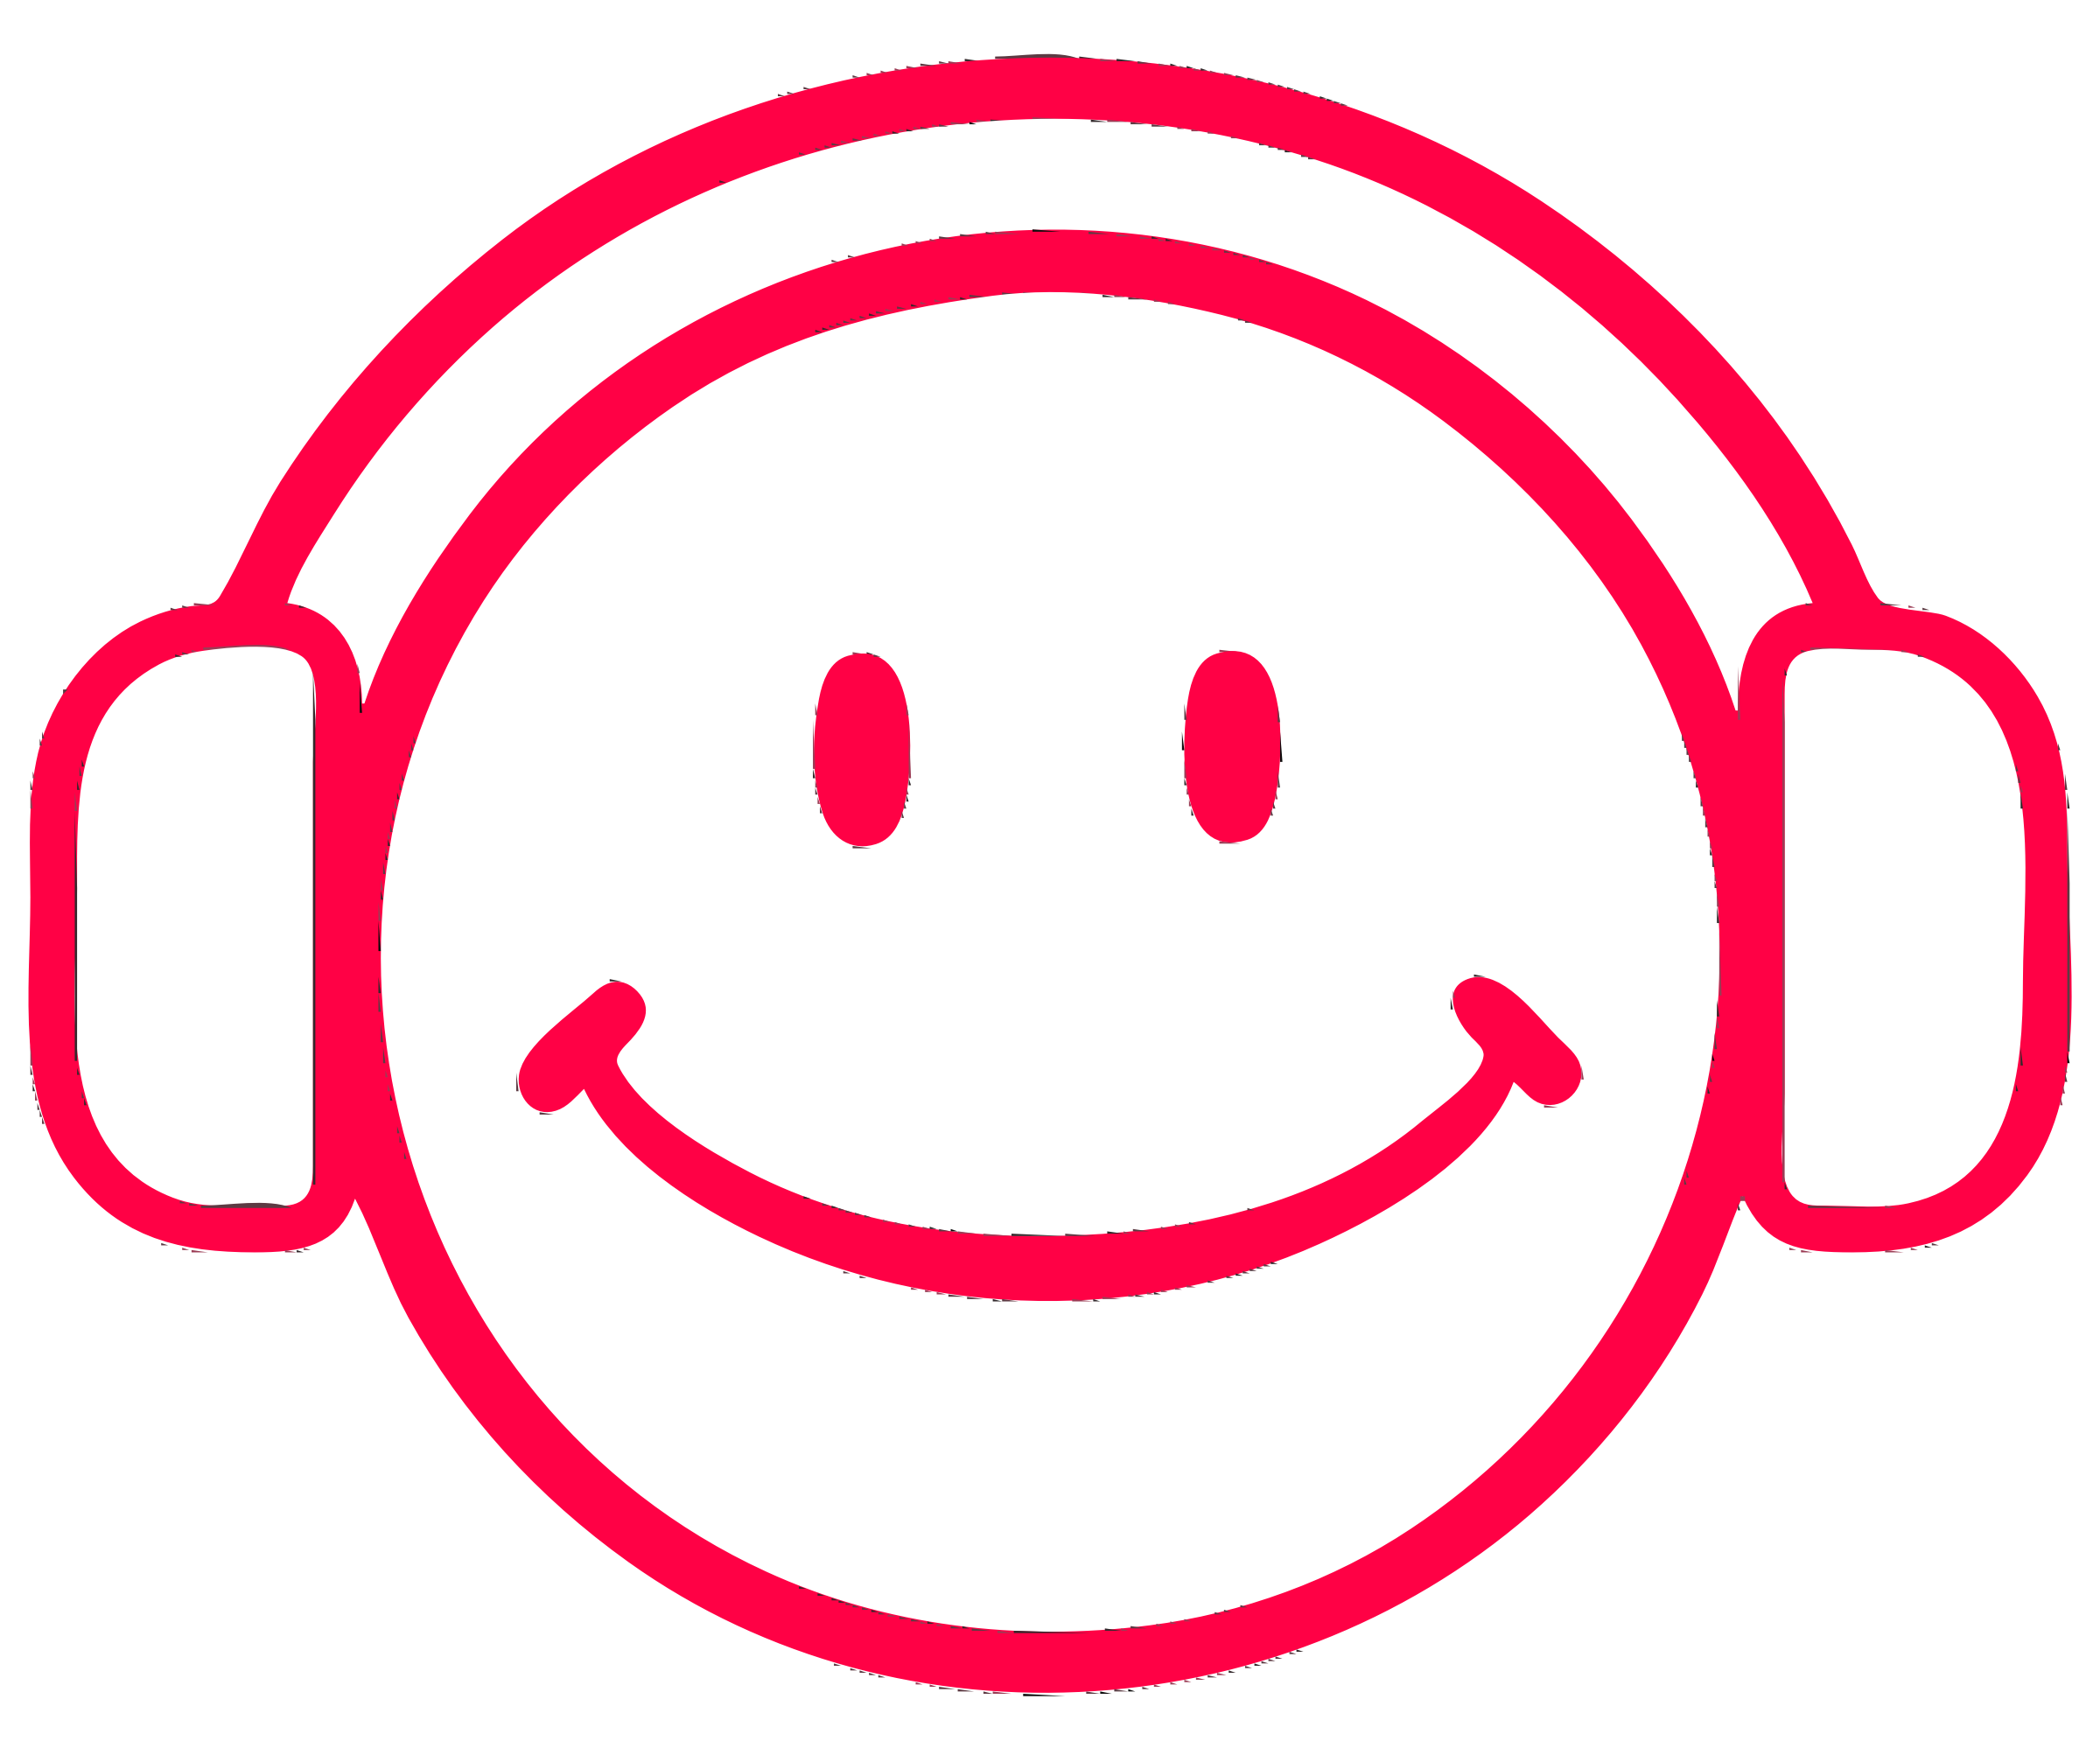 Cartoon Smiley With Headphones by pasm6634955